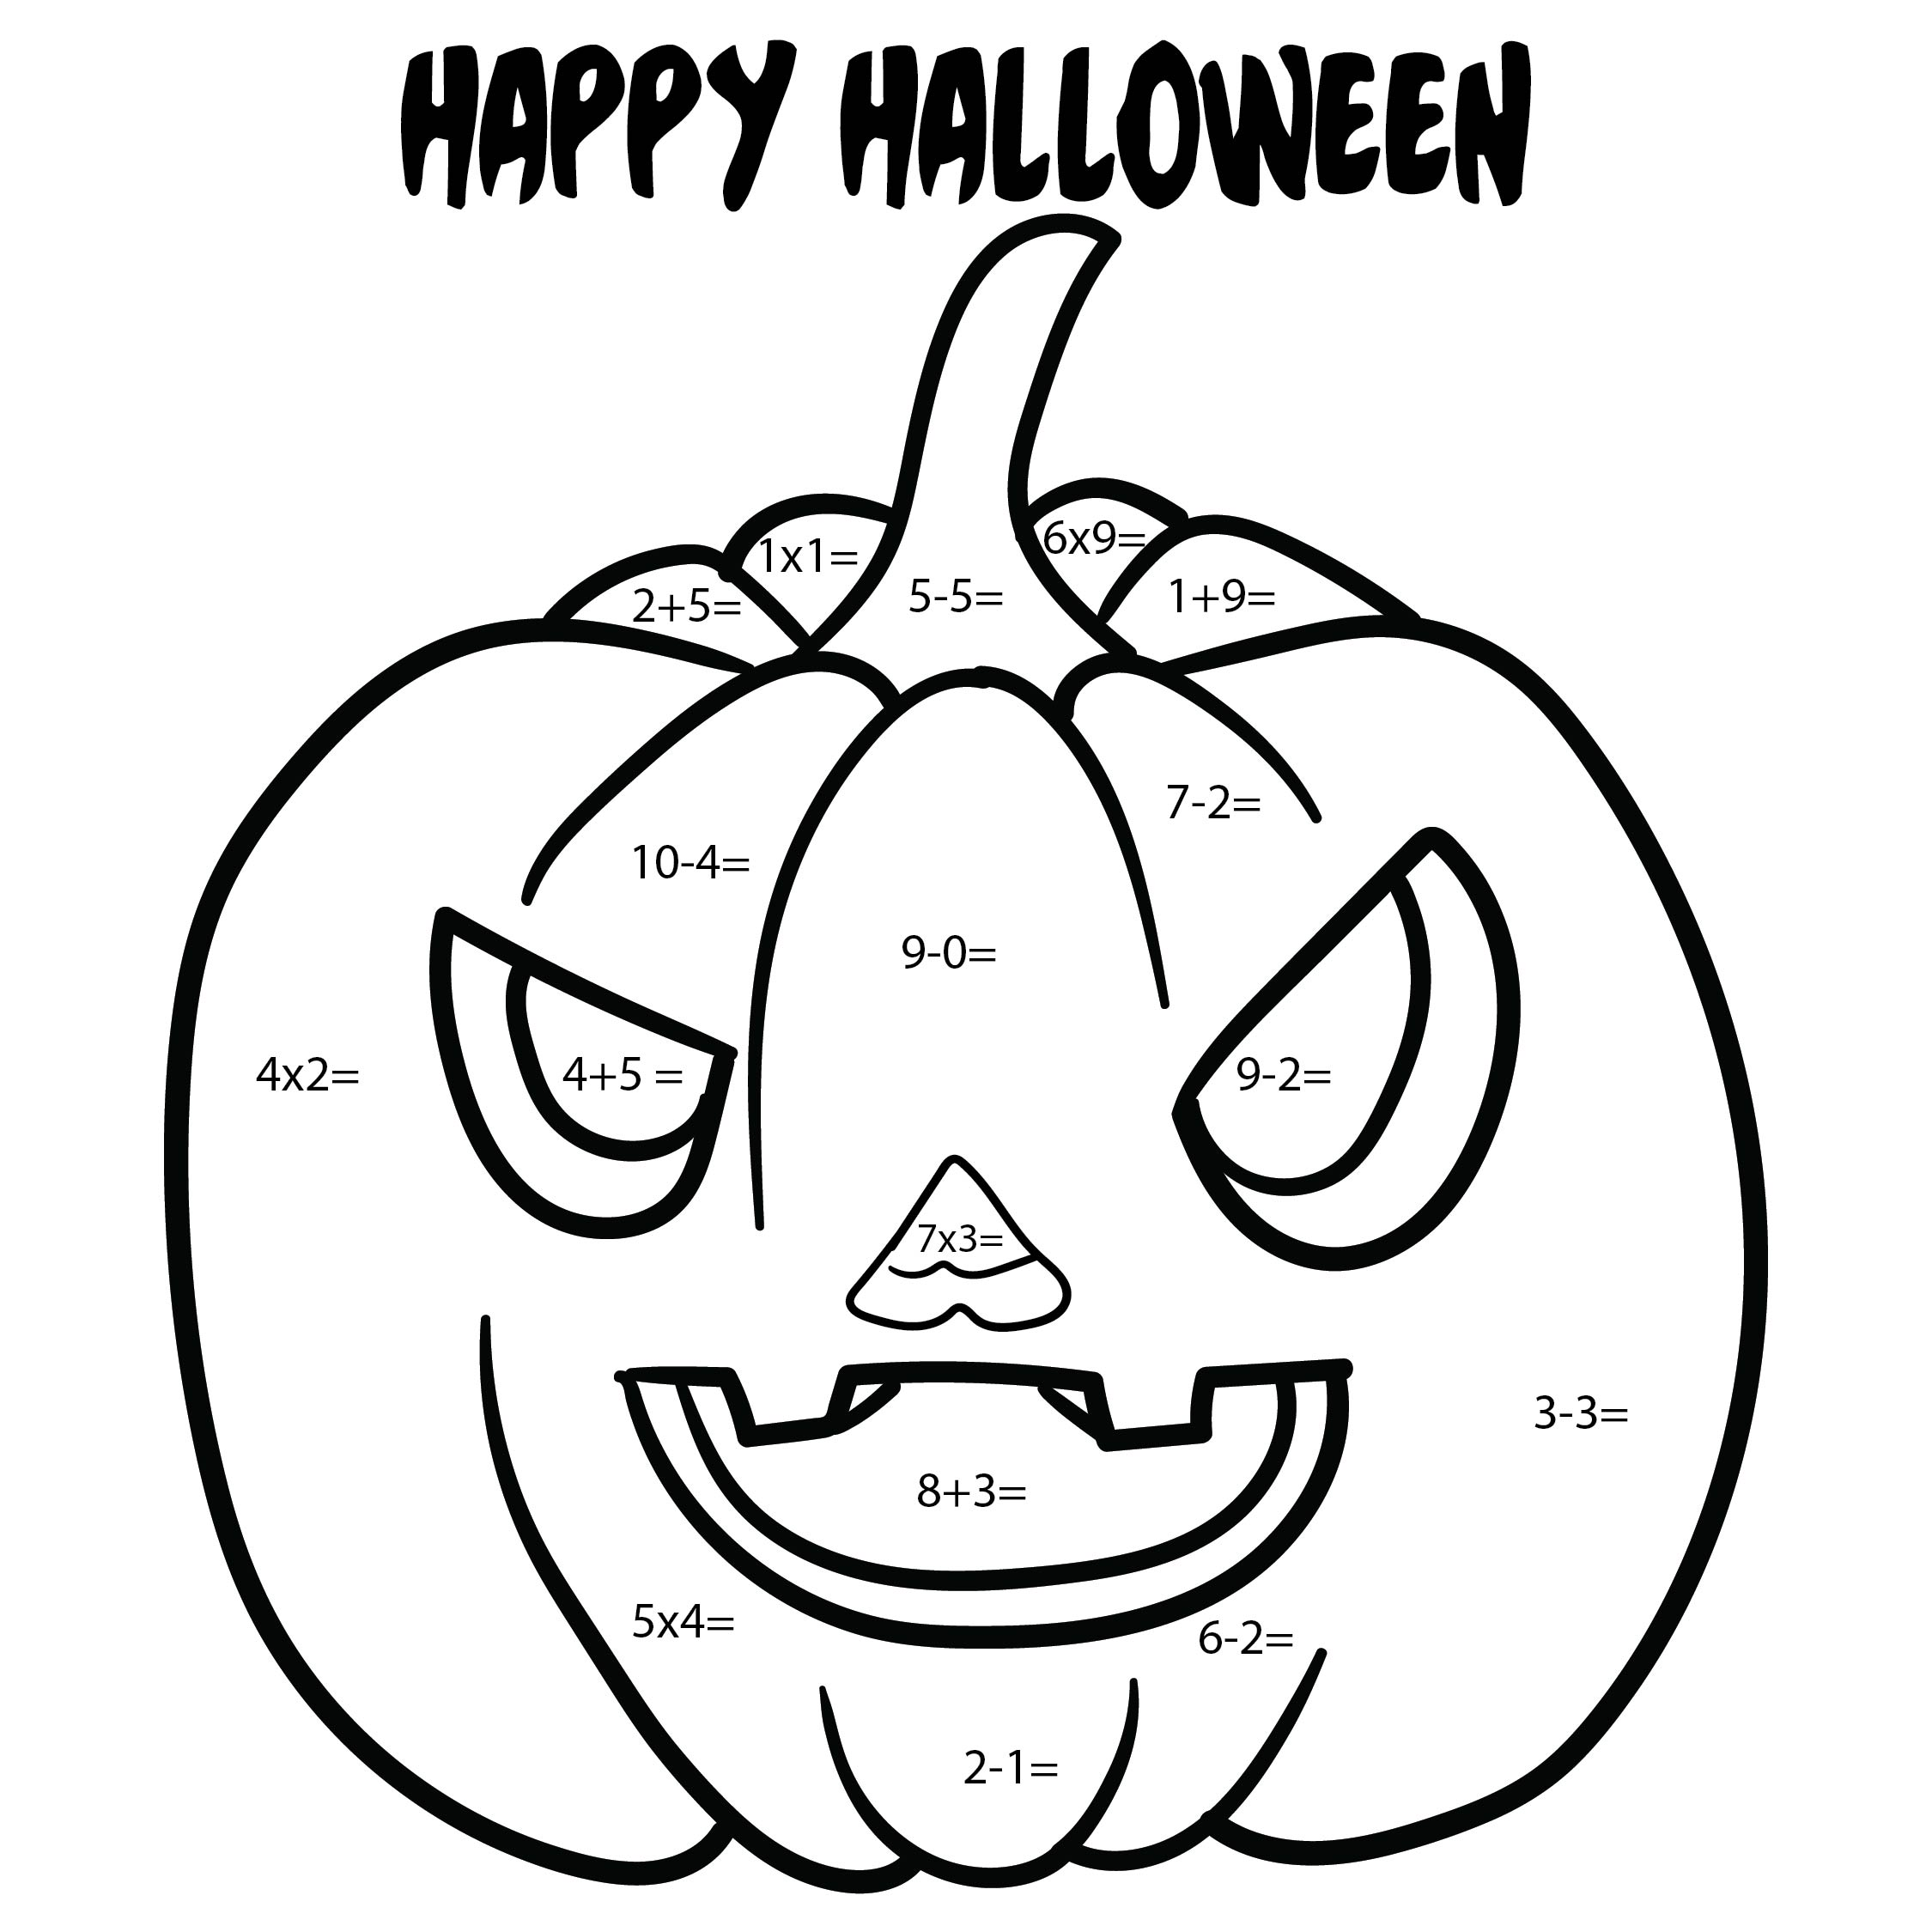 Uncategorized. Fun Halloween Worksheets. bidwellranchcam Resume Site